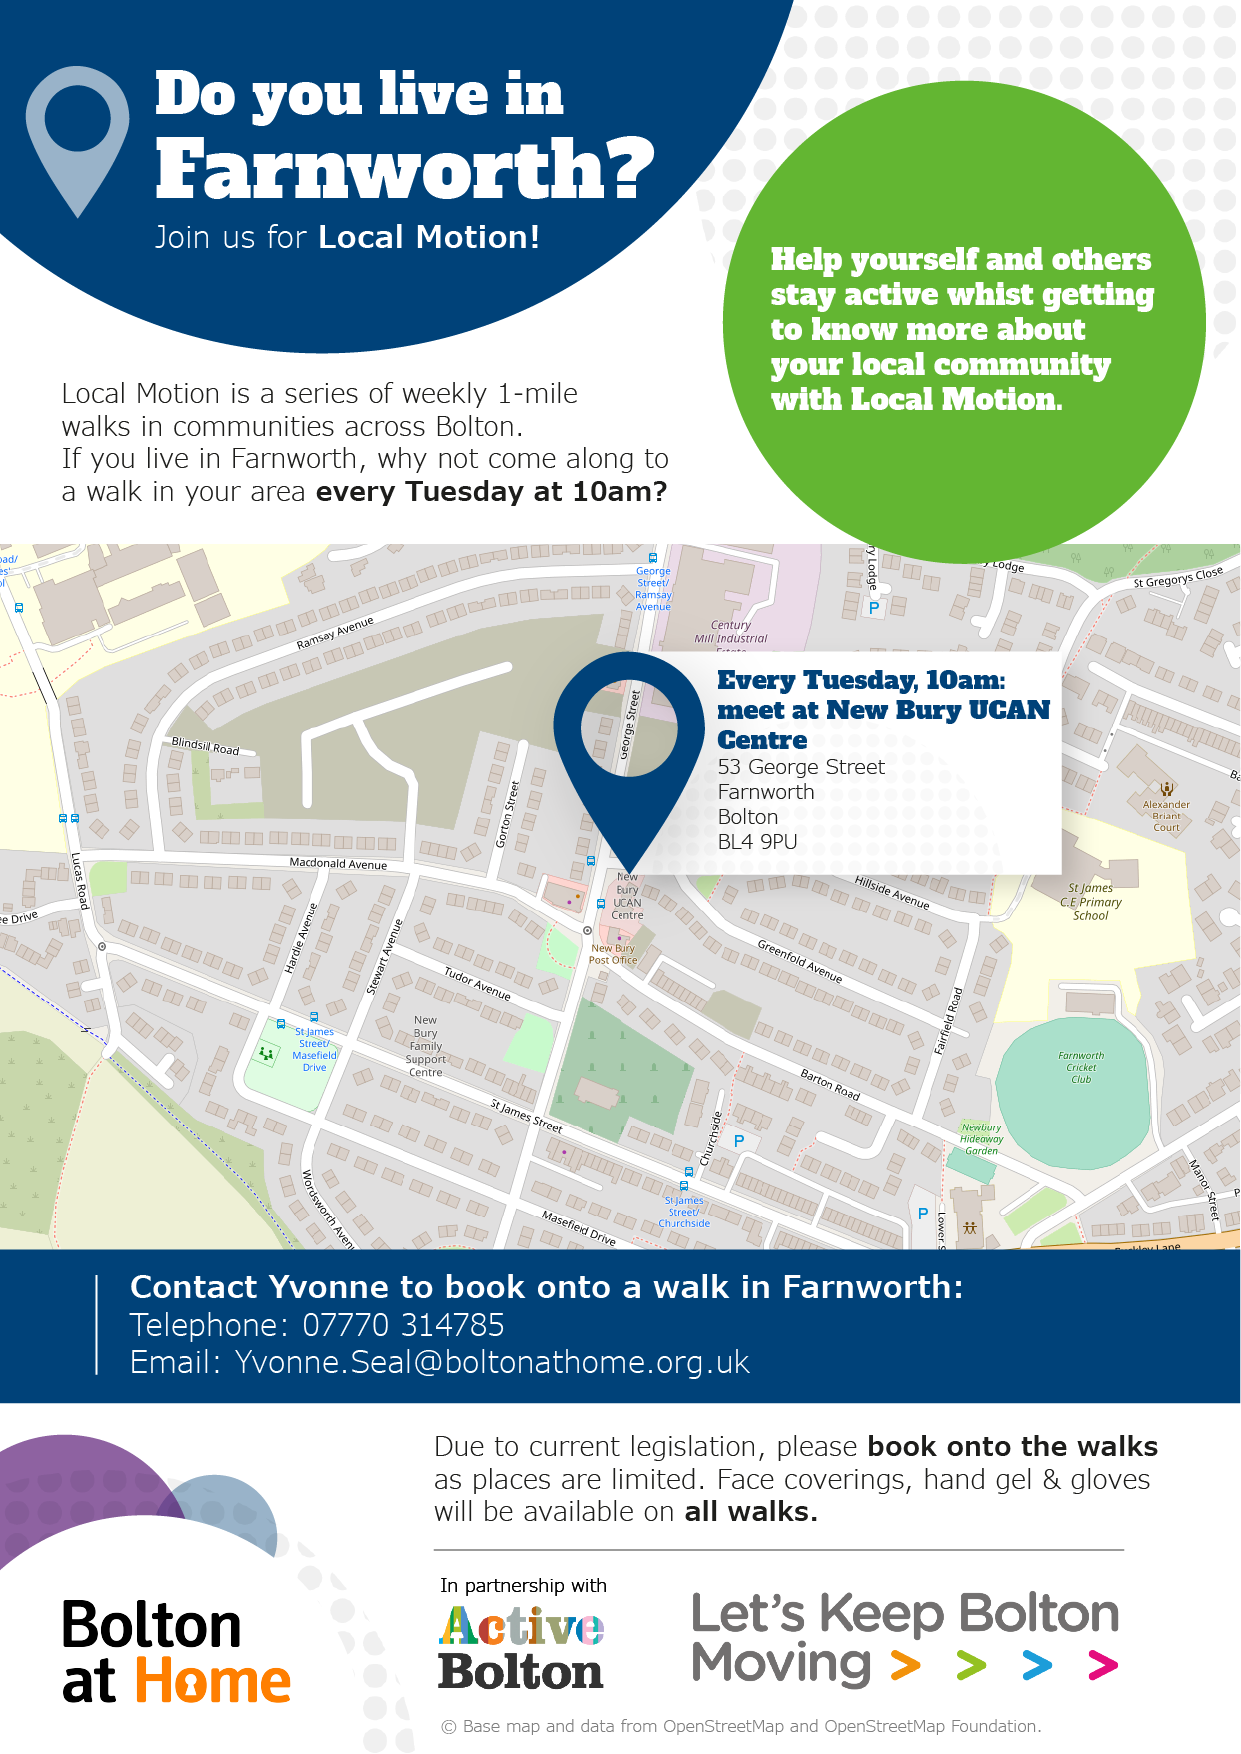 Poster displaying details of Local Motion walks in Farnworth. These details are available in text form using the table in the 'full Local Motion walks schedule below.